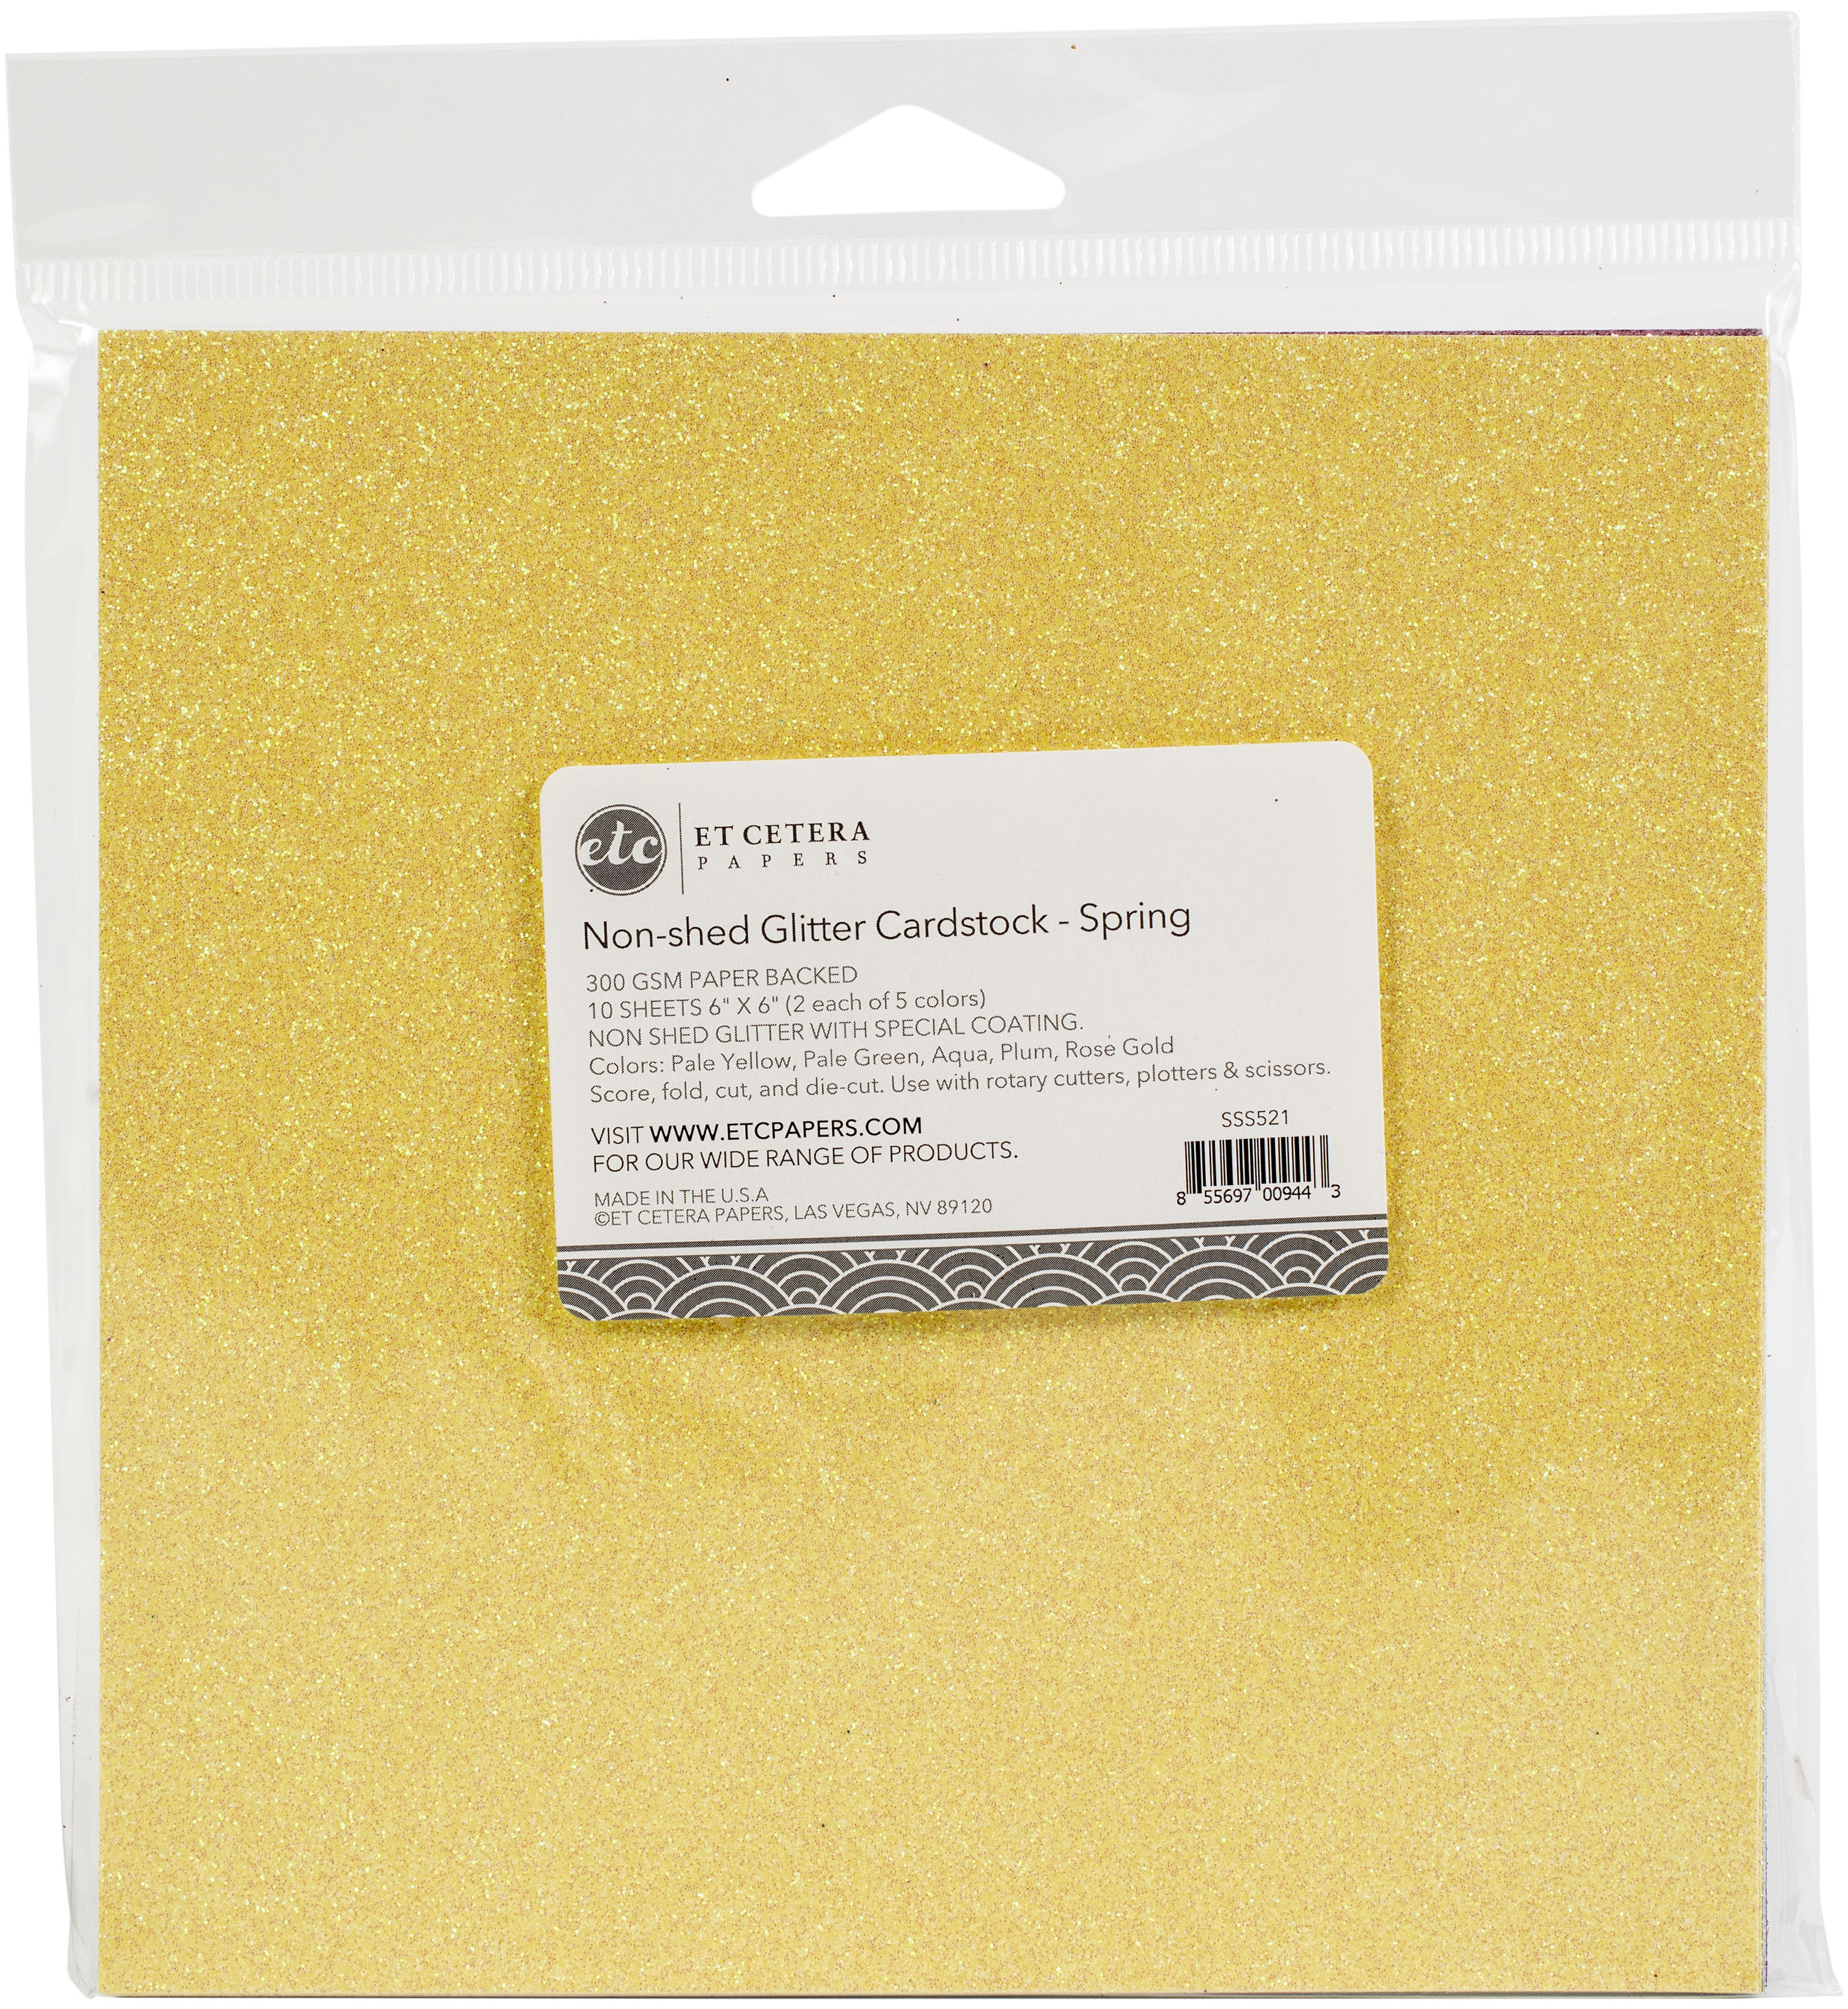 Non-Shed Glitter Cardstock - Spring Assortment, 6x6